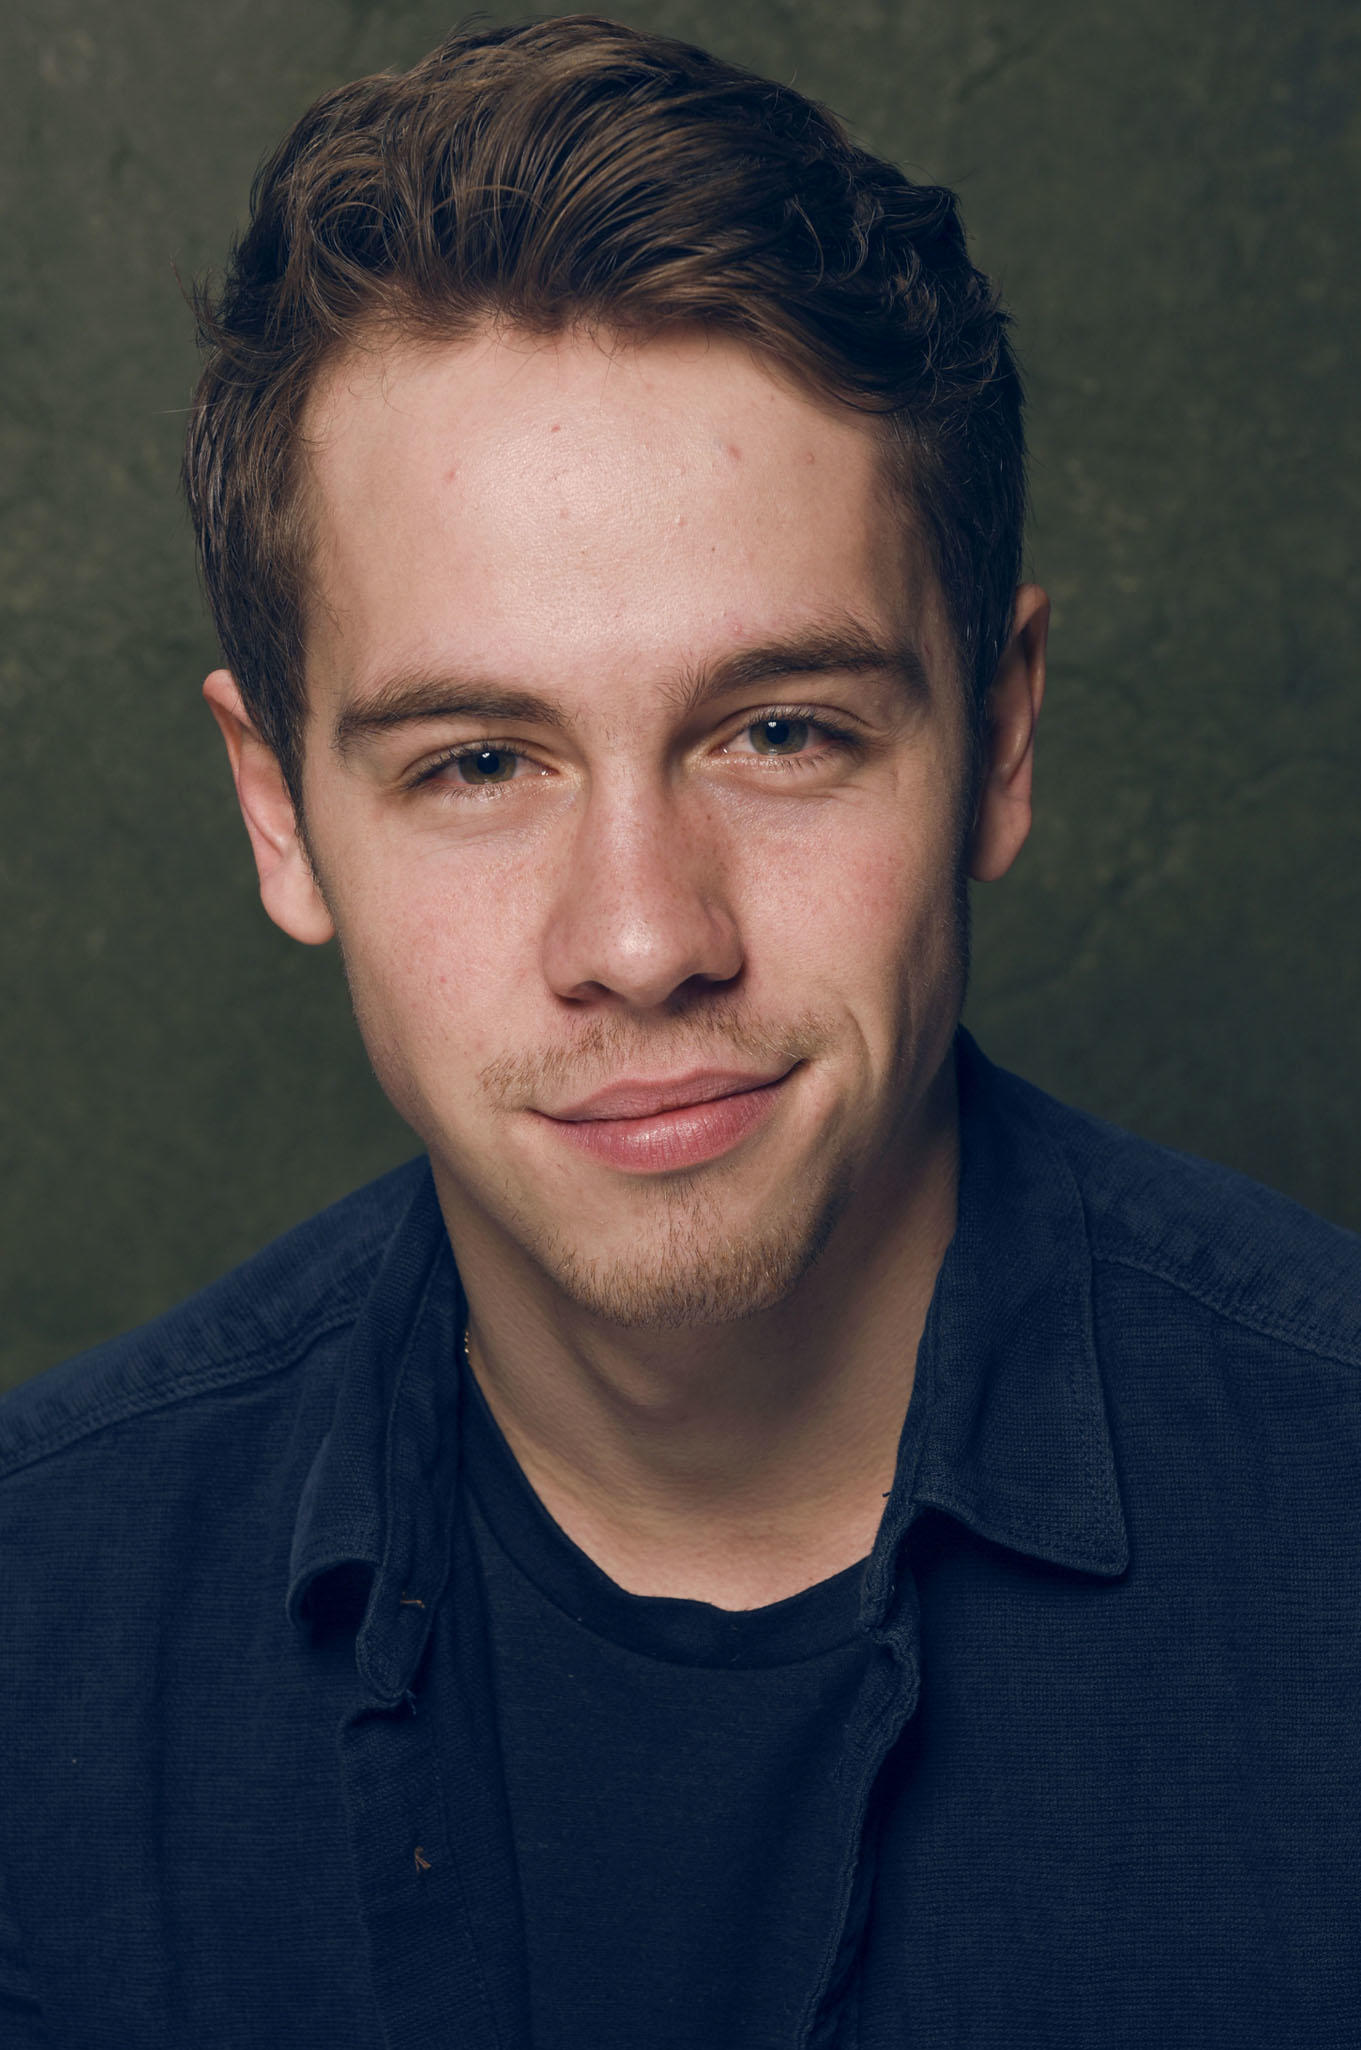 Munro Chambers during the 2015 Sundance Film Festival.